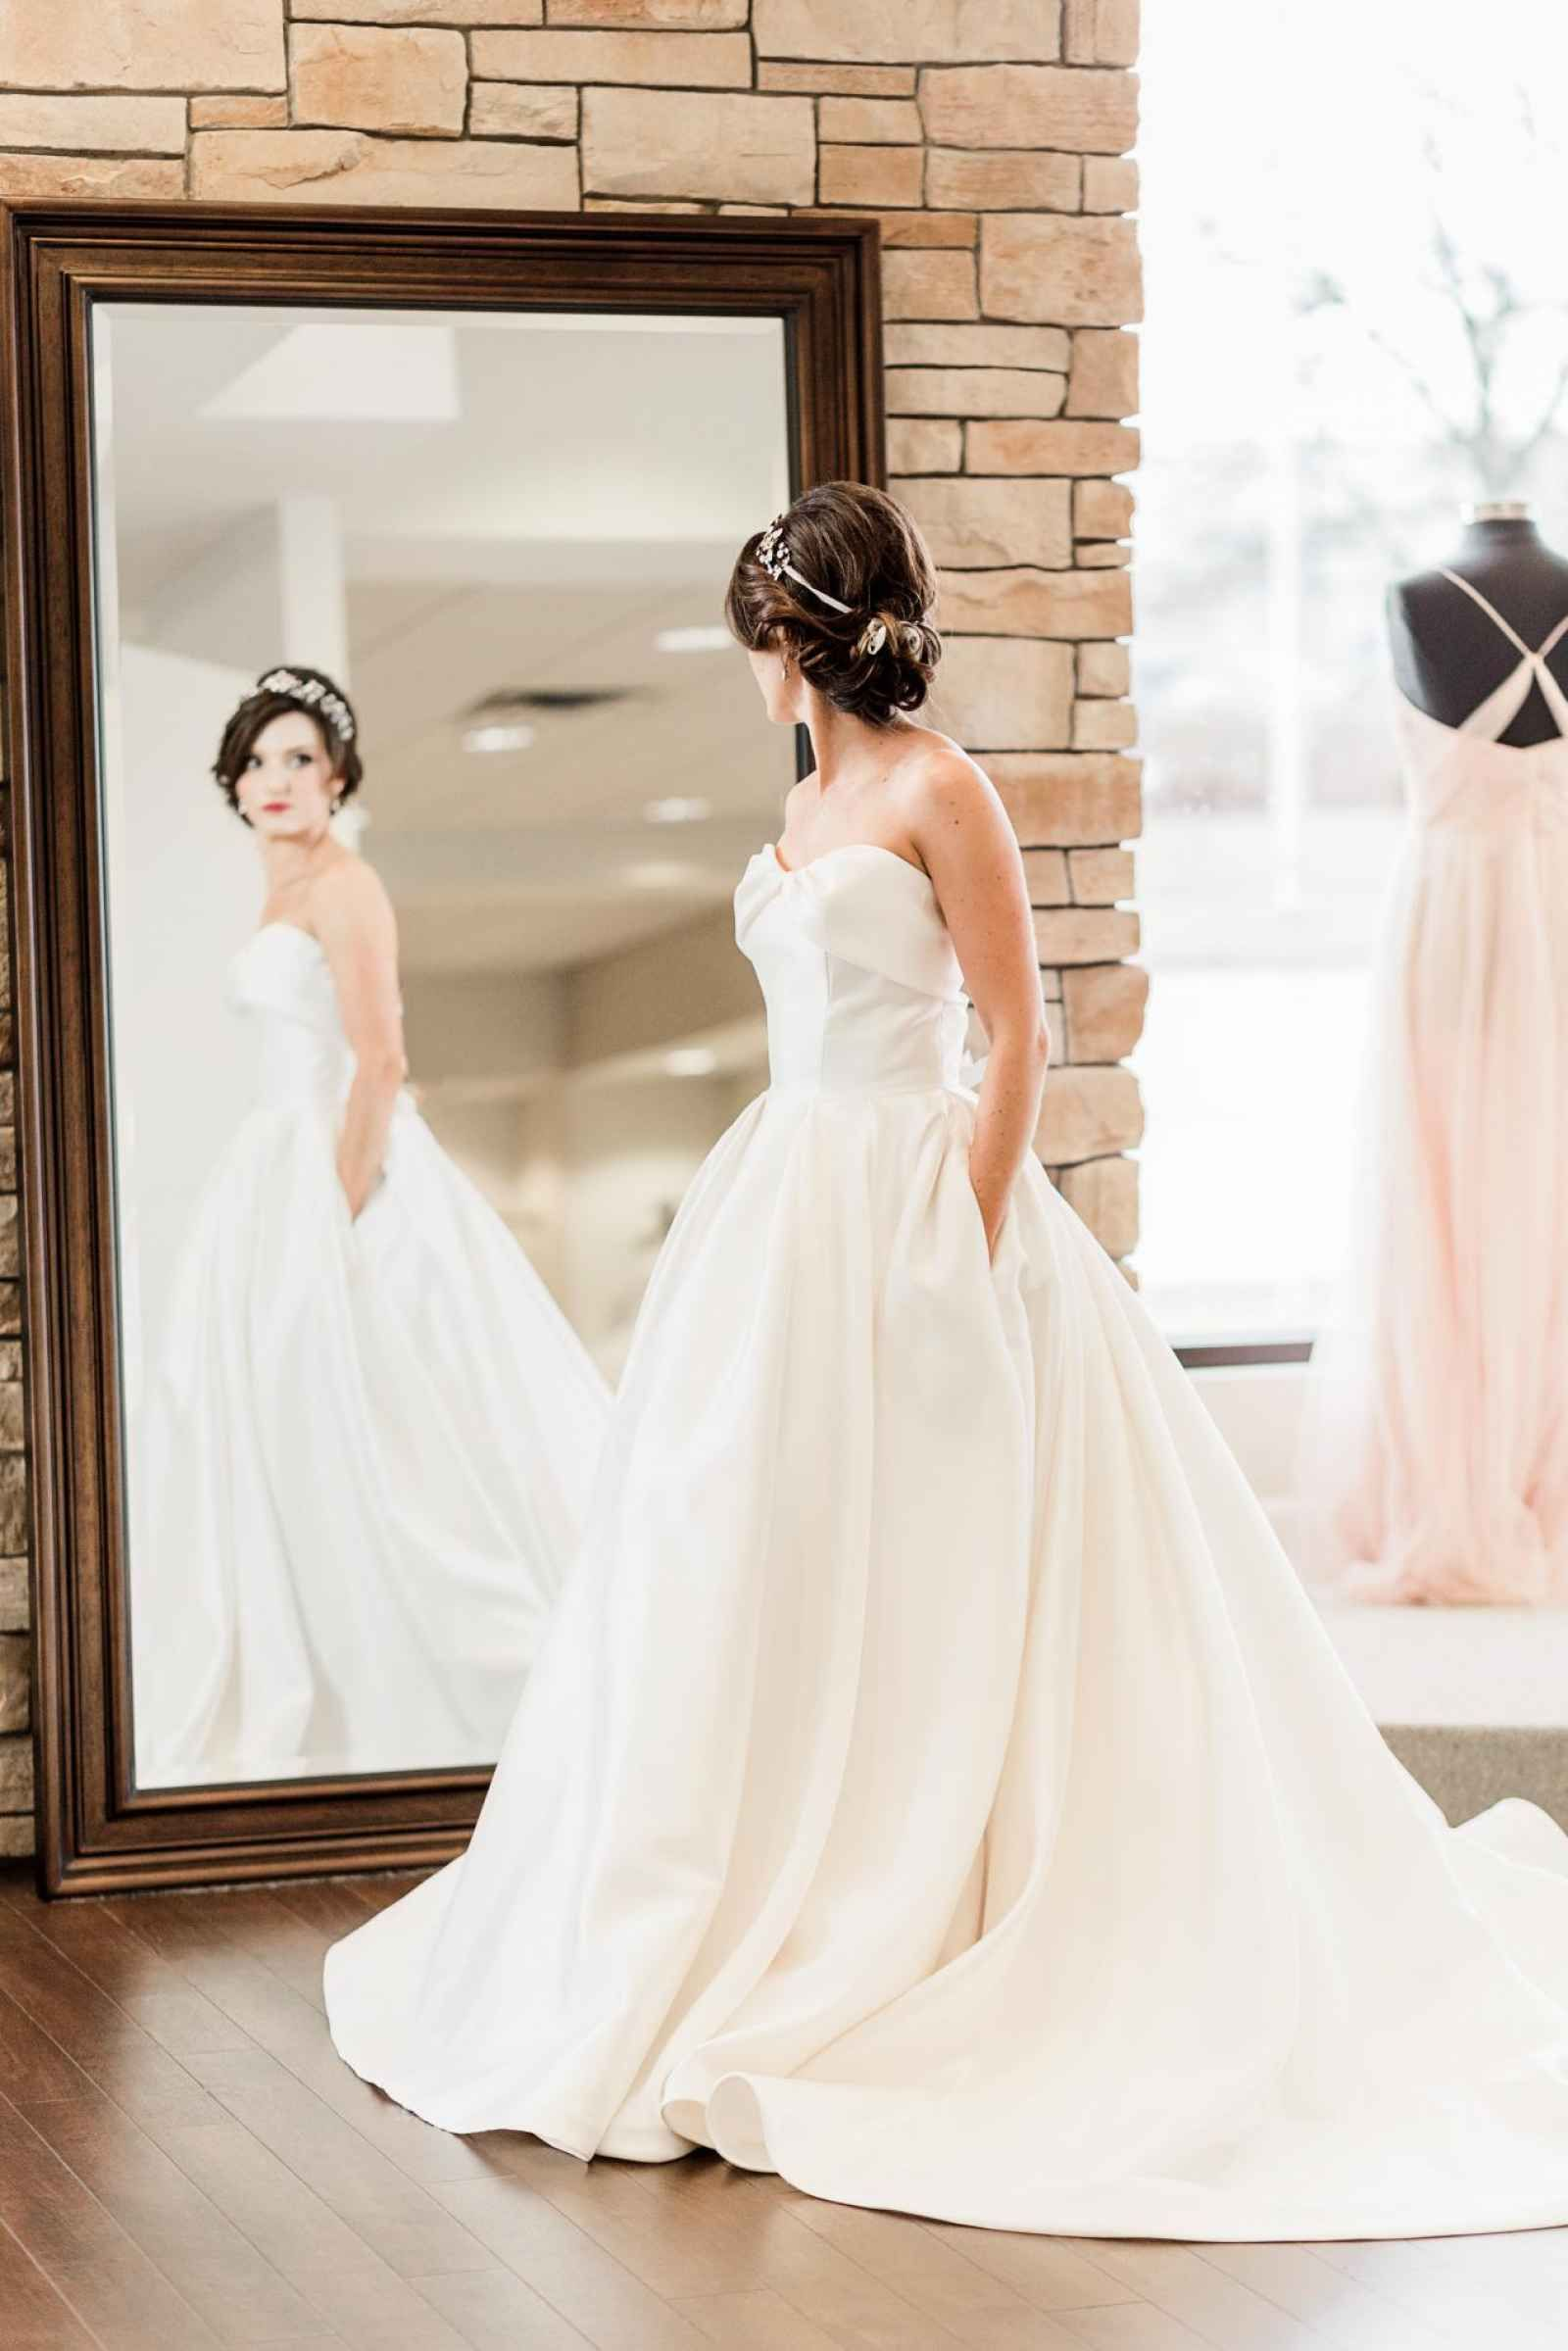 Wedding dress shopping in Indiana, Michigan, Illinois, Kentucky ...